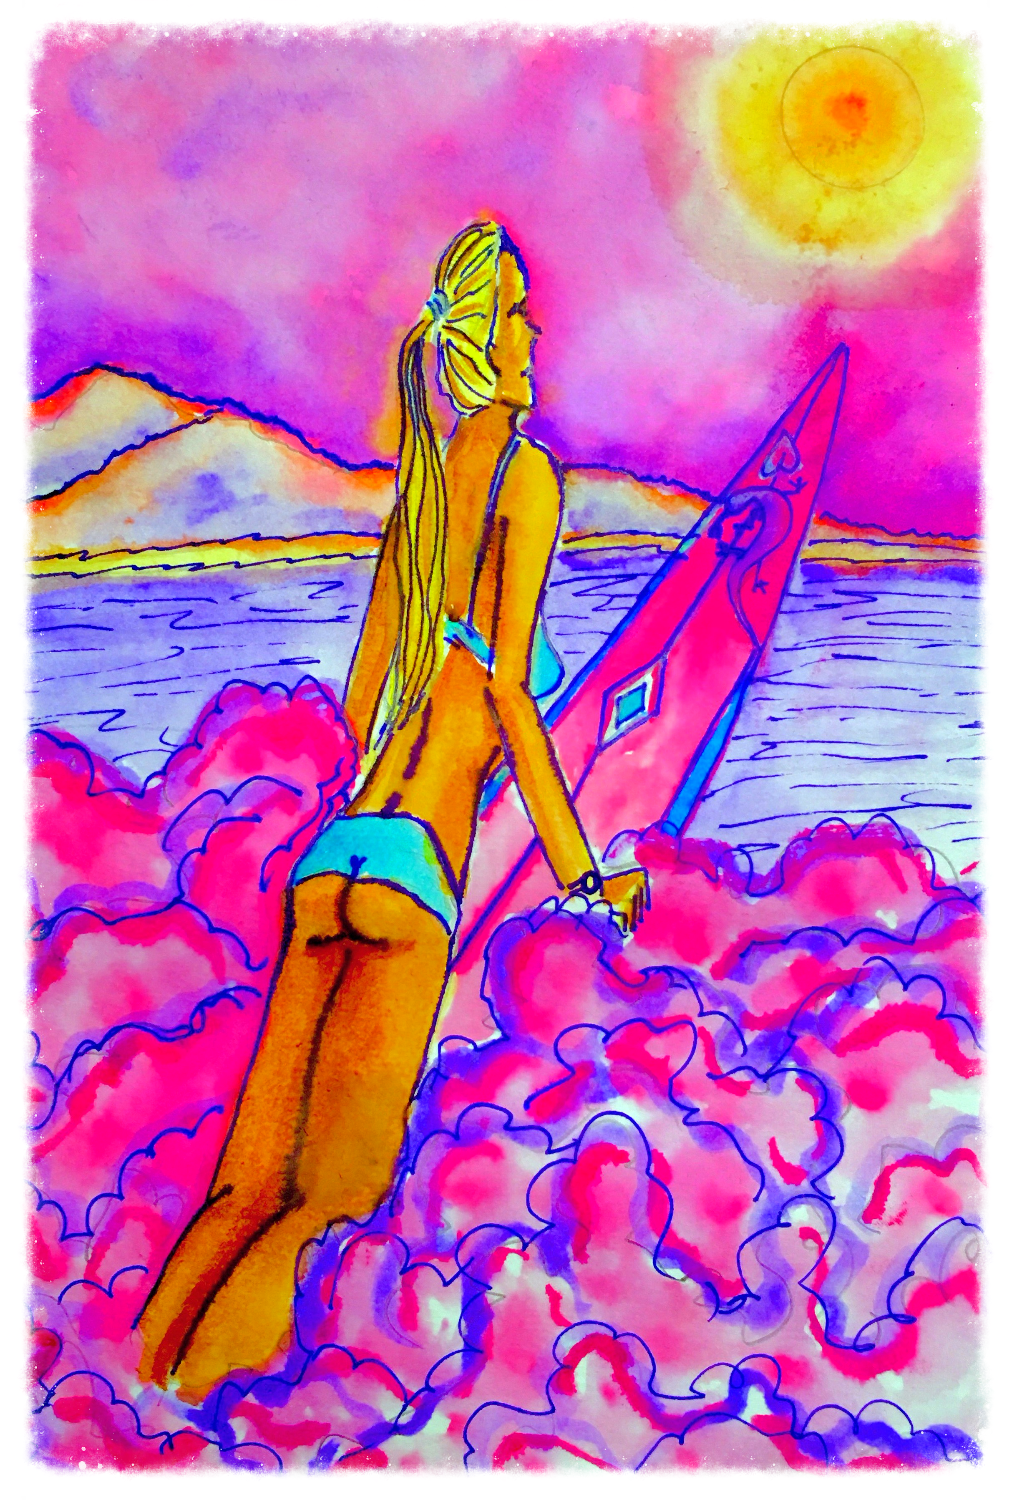 Surf Art by Brent February #23